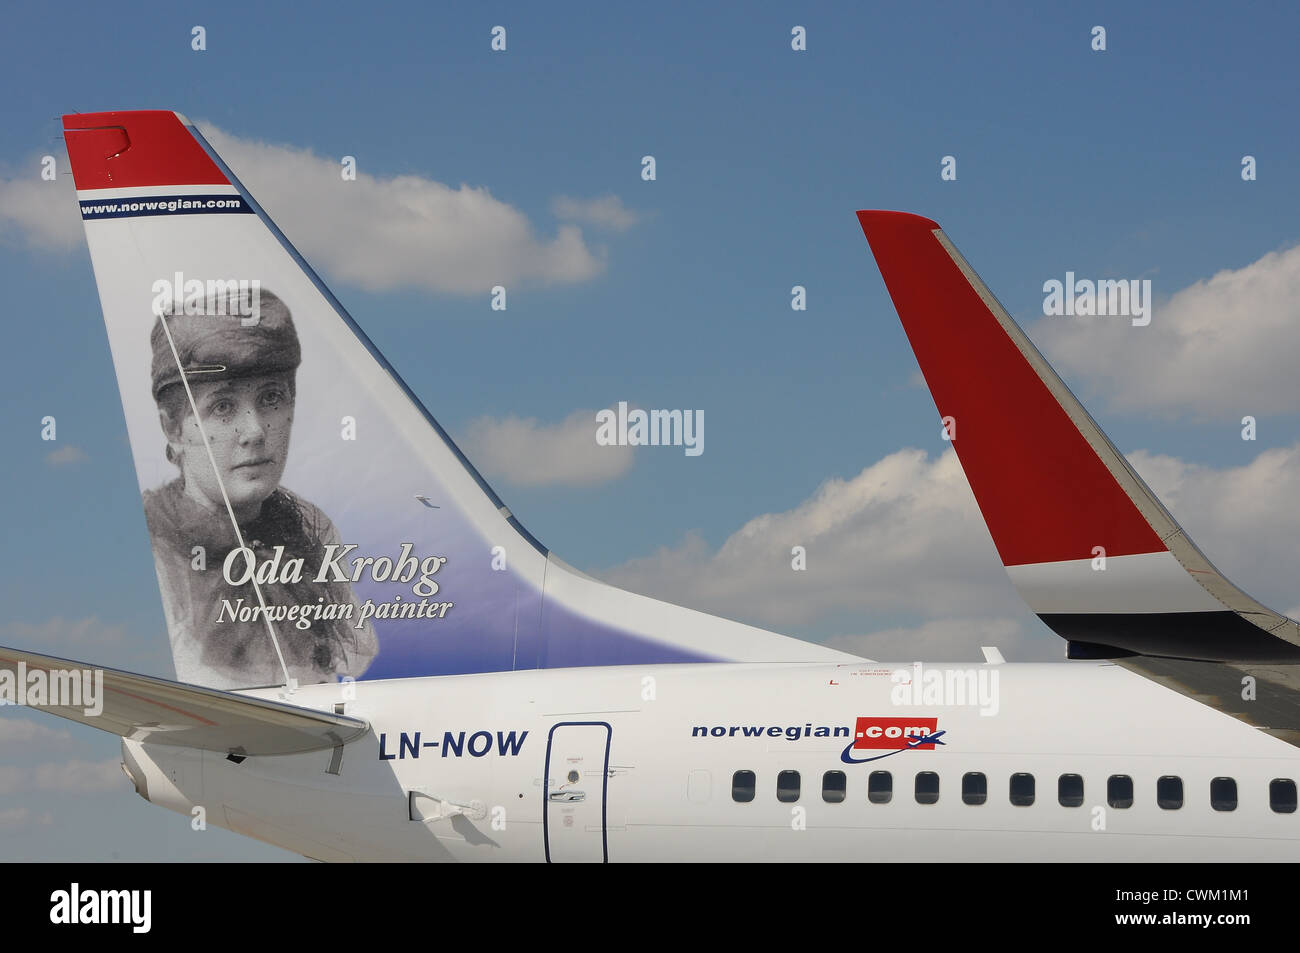 Norwegian Air Shuttle Stockbild